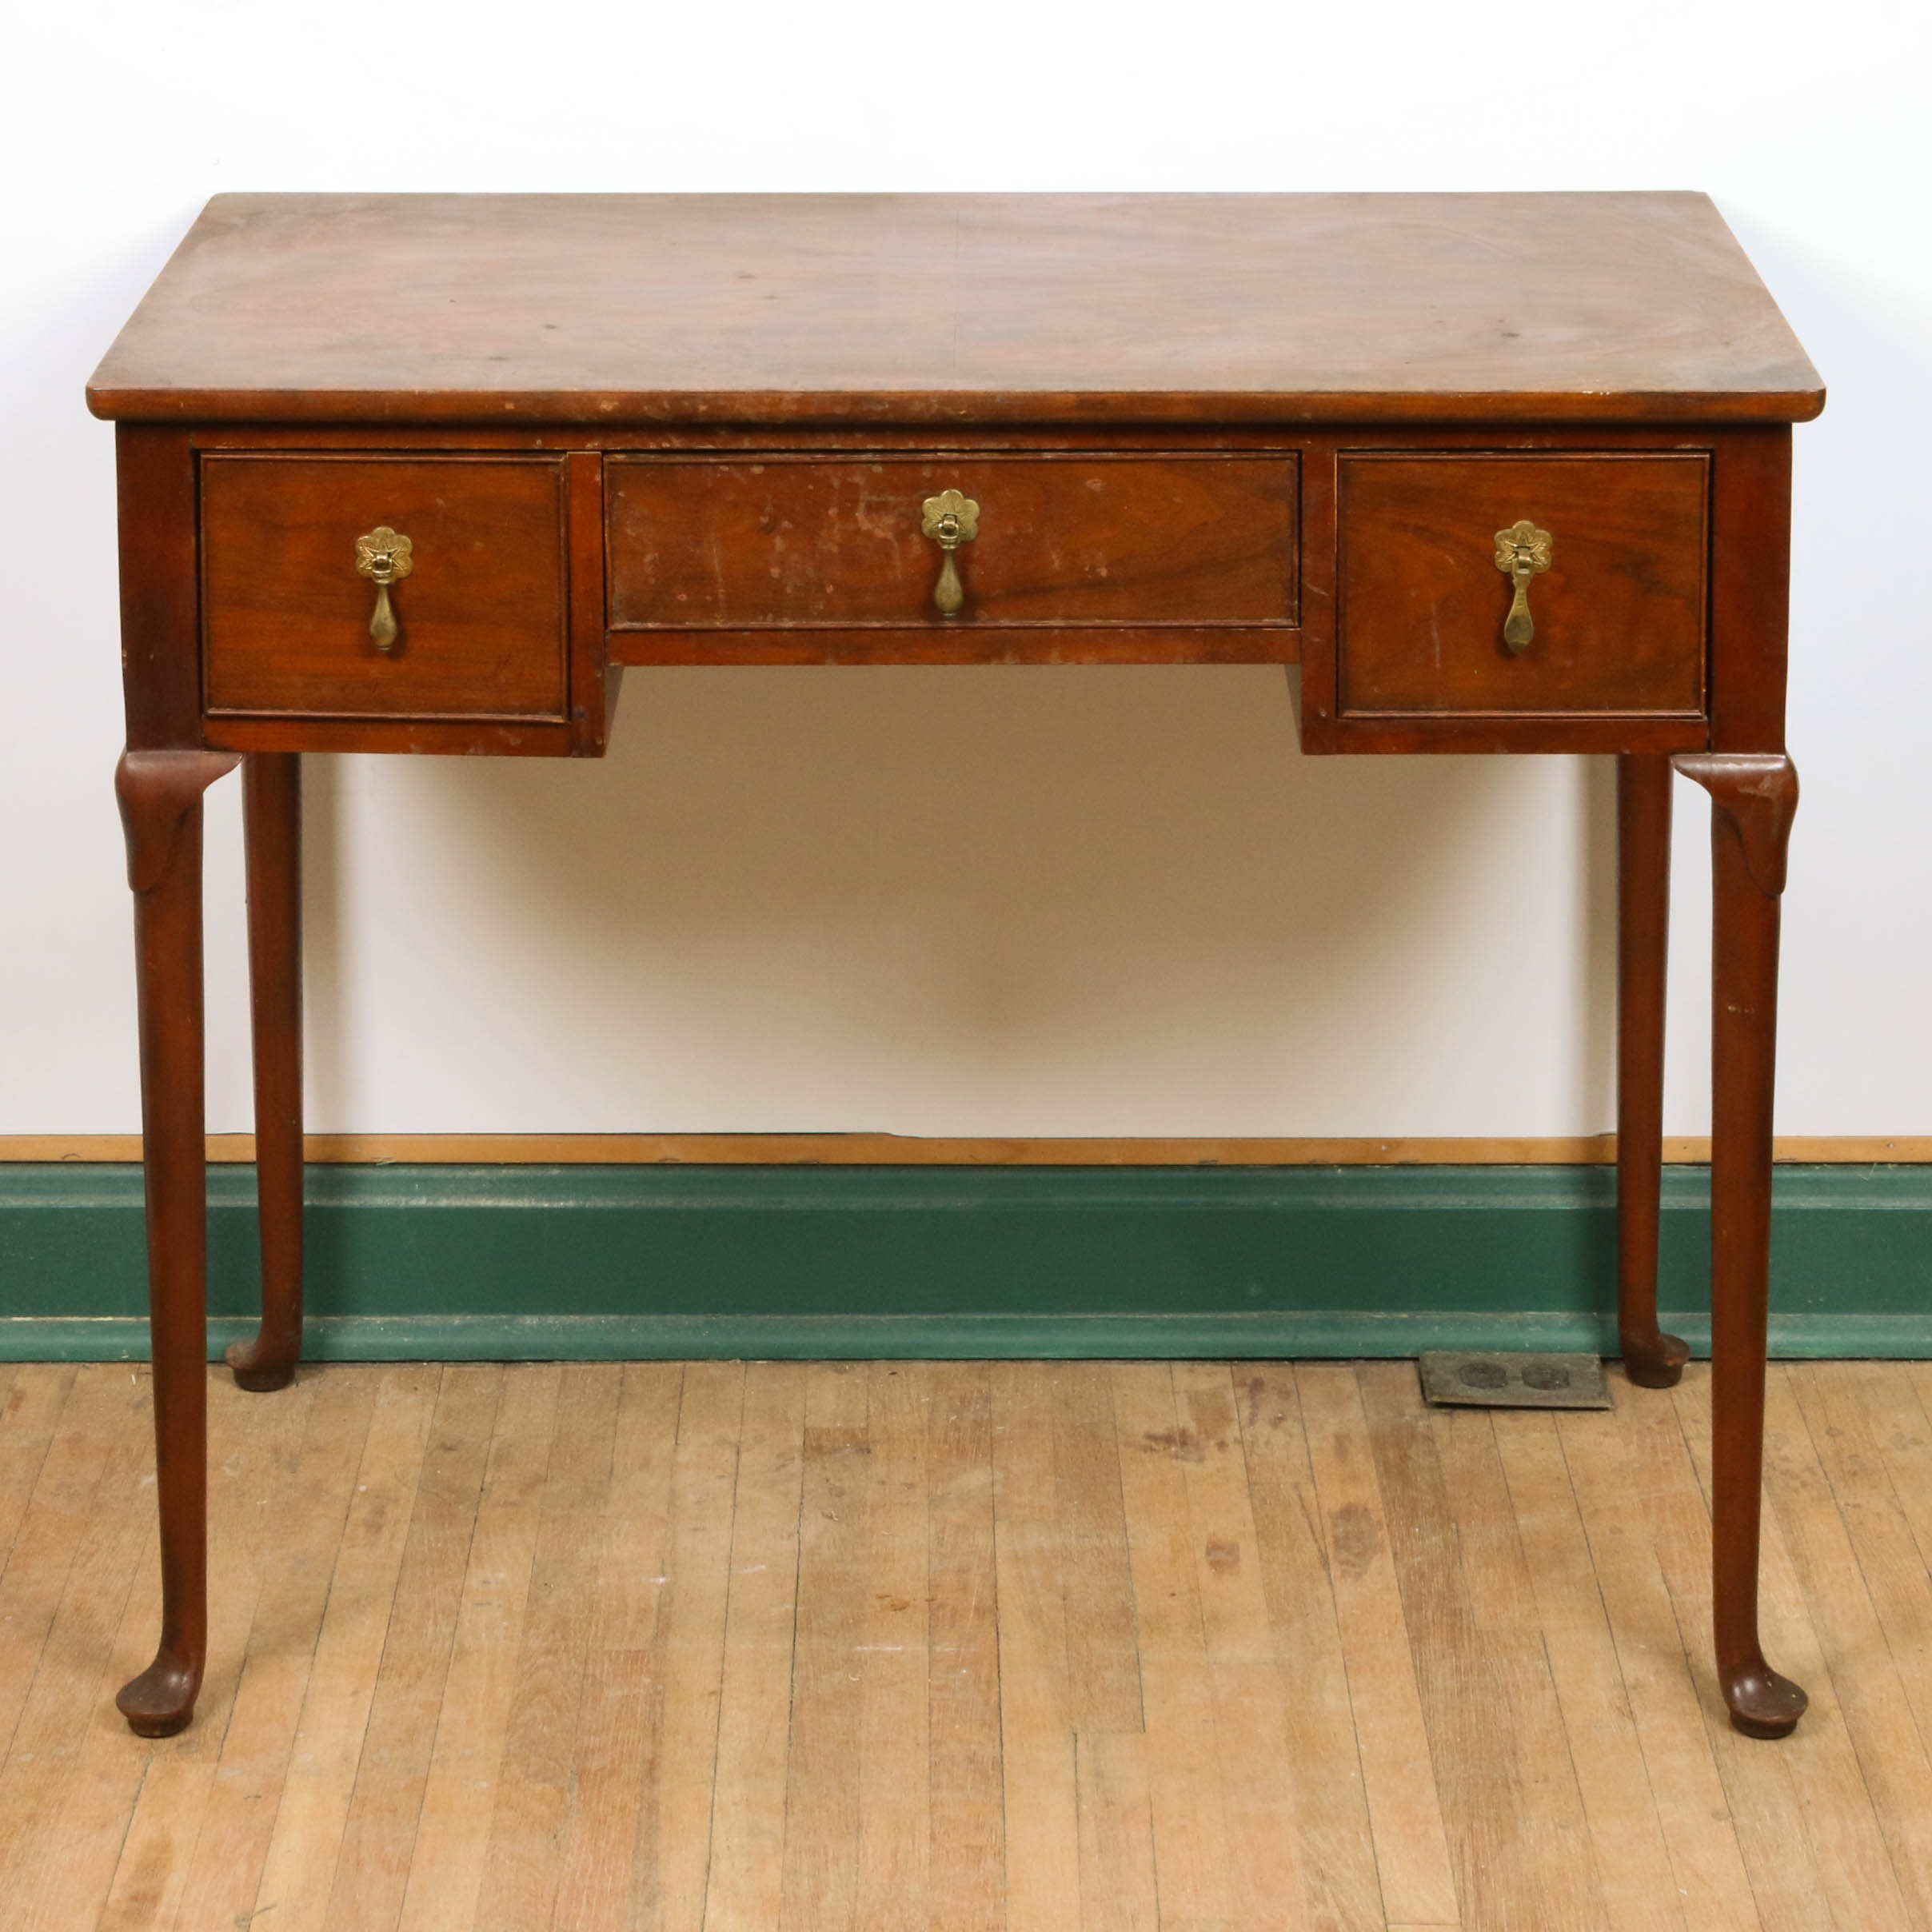 Queen Anne Style Burlwood Maple Writing Desk from Baker Furniture , 20th Century